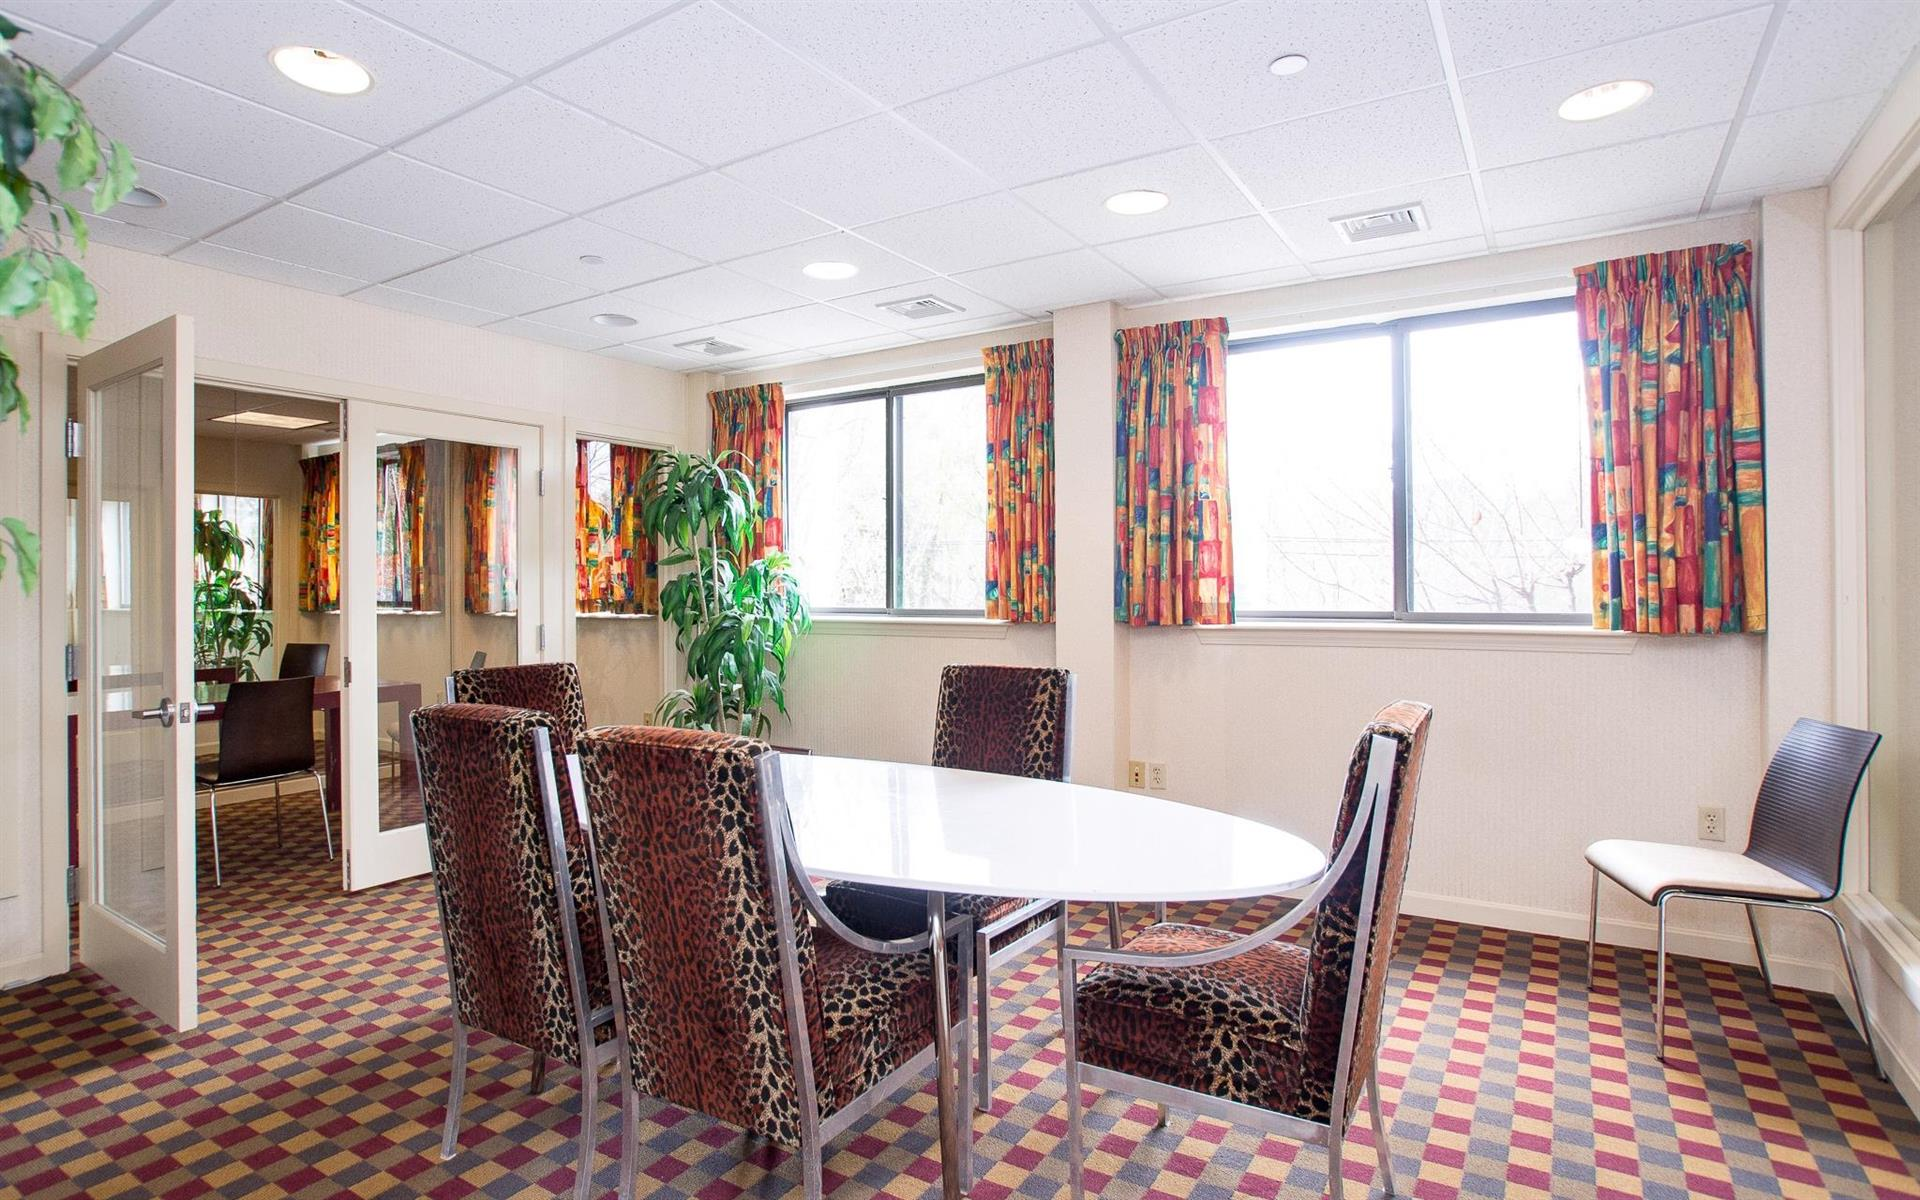 Park Place - Meeting Room 1